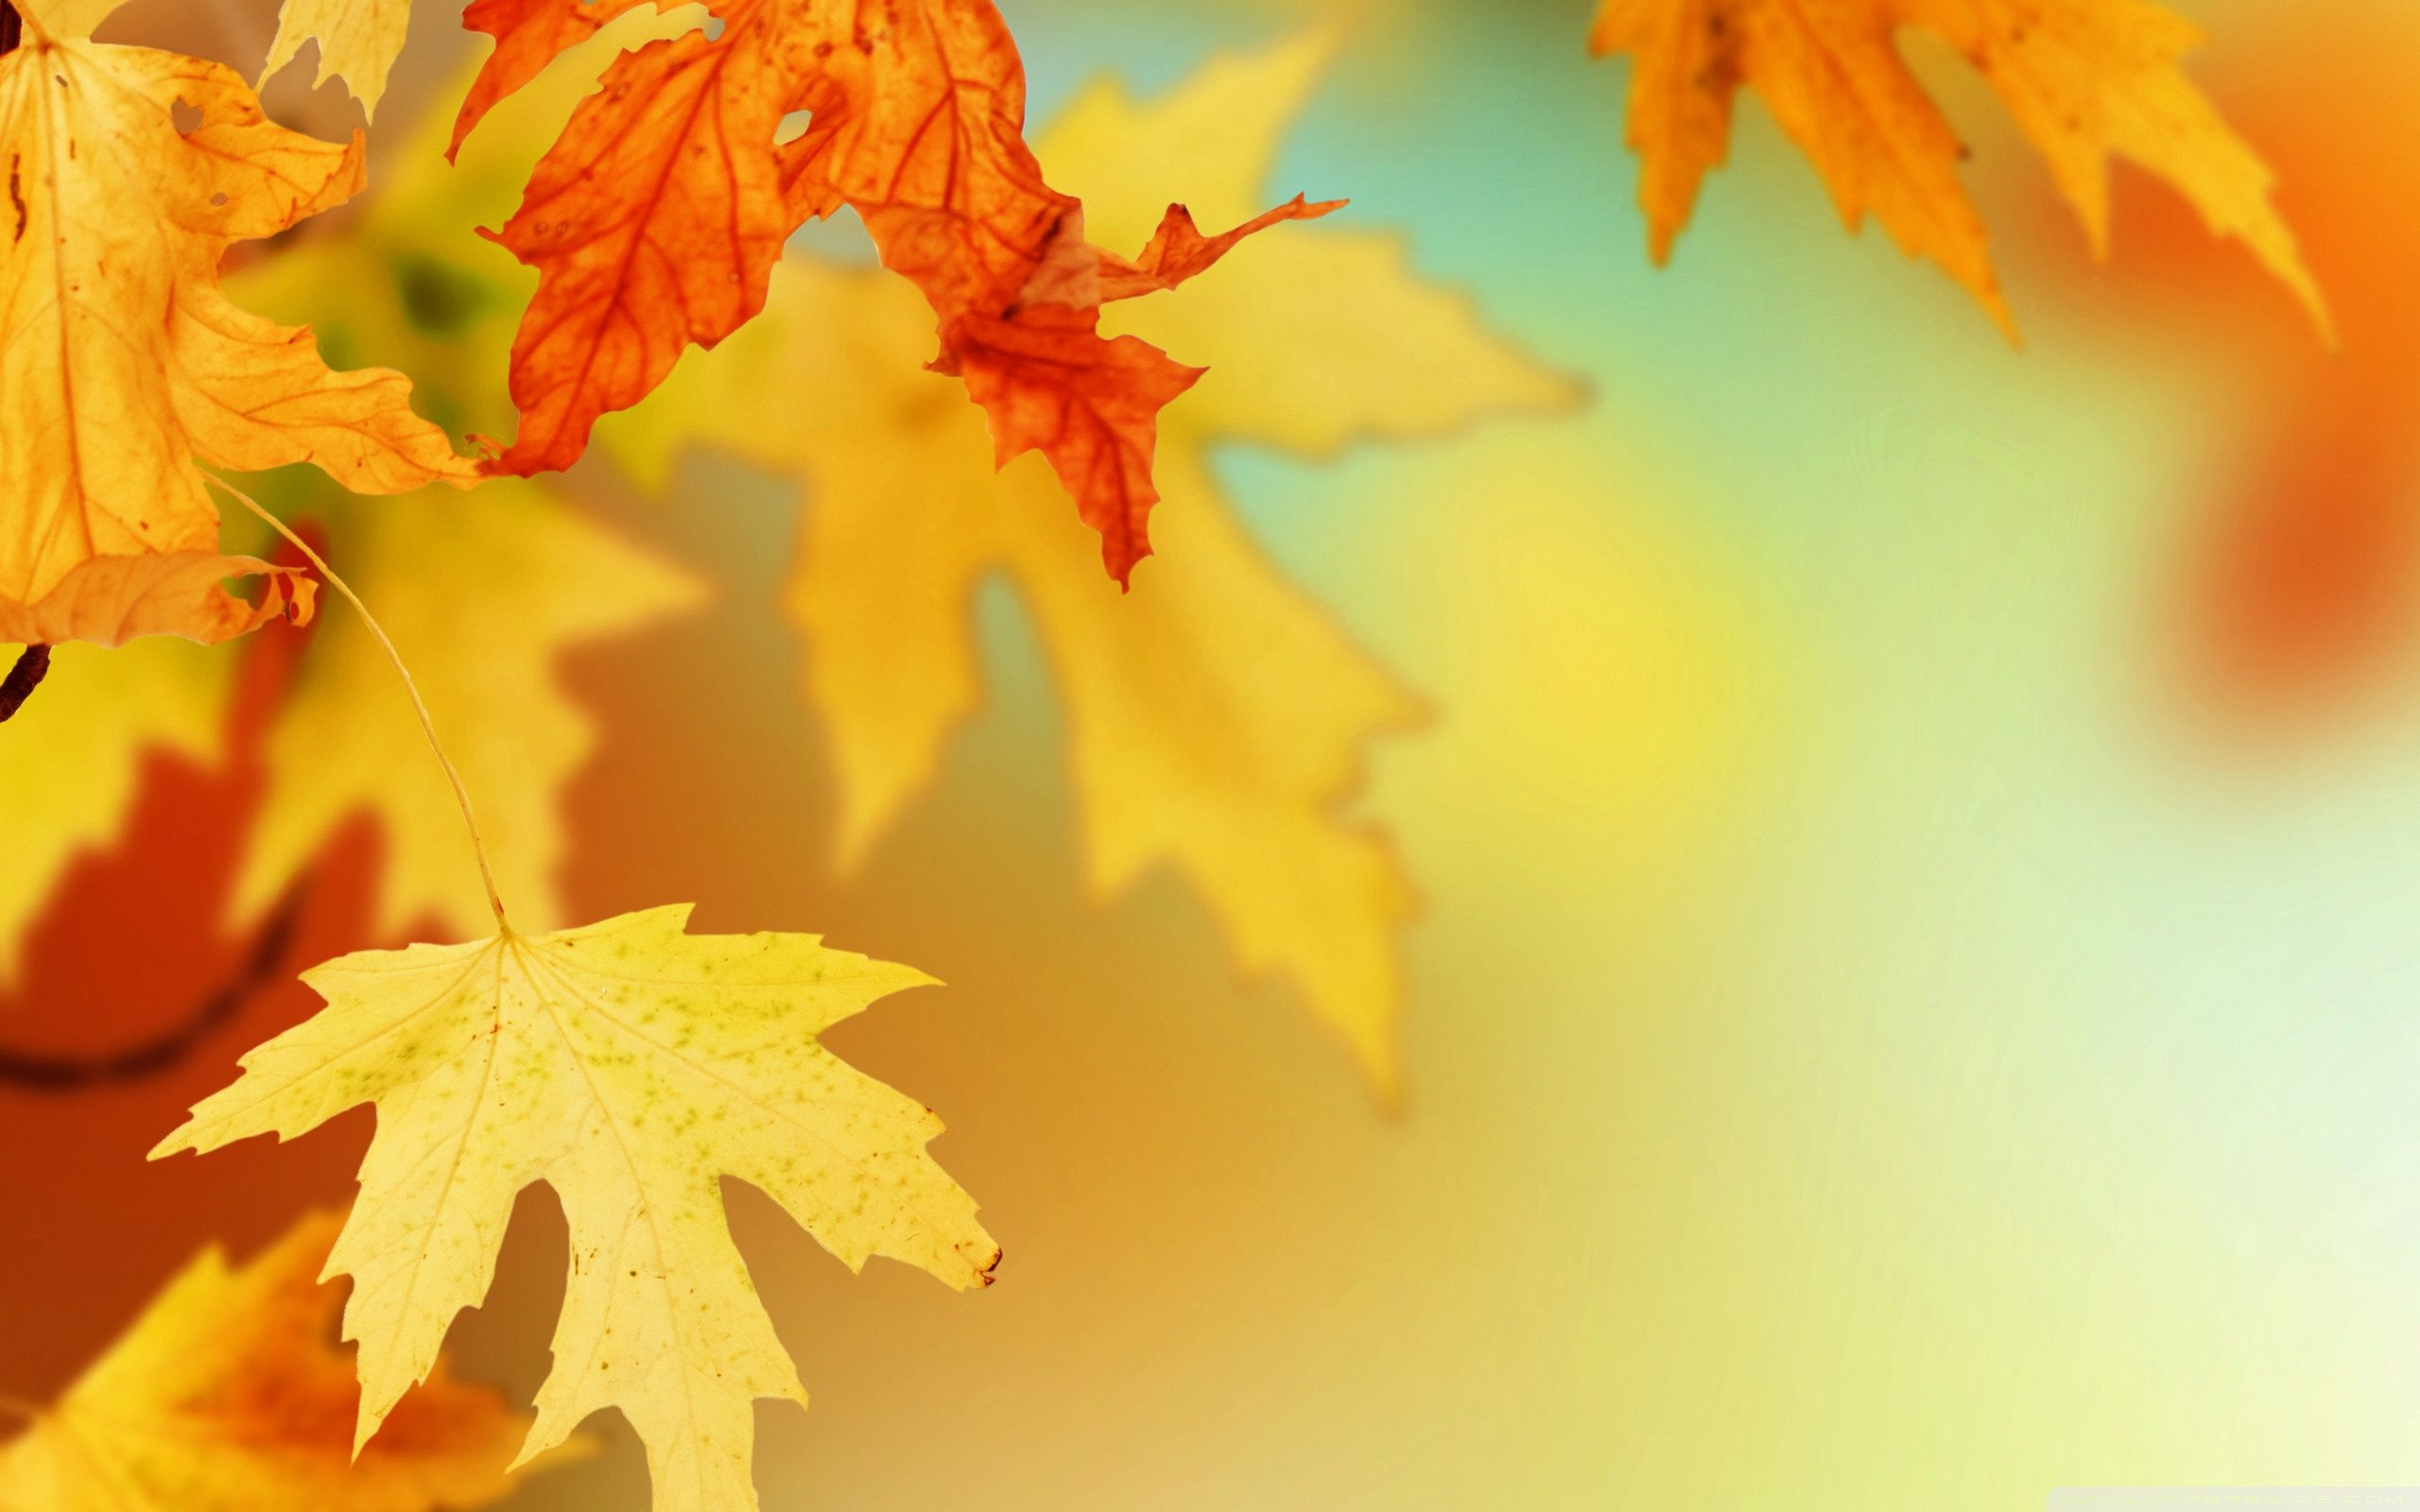 Fall Leaves Wallpapers Free - Wallpaper Cave